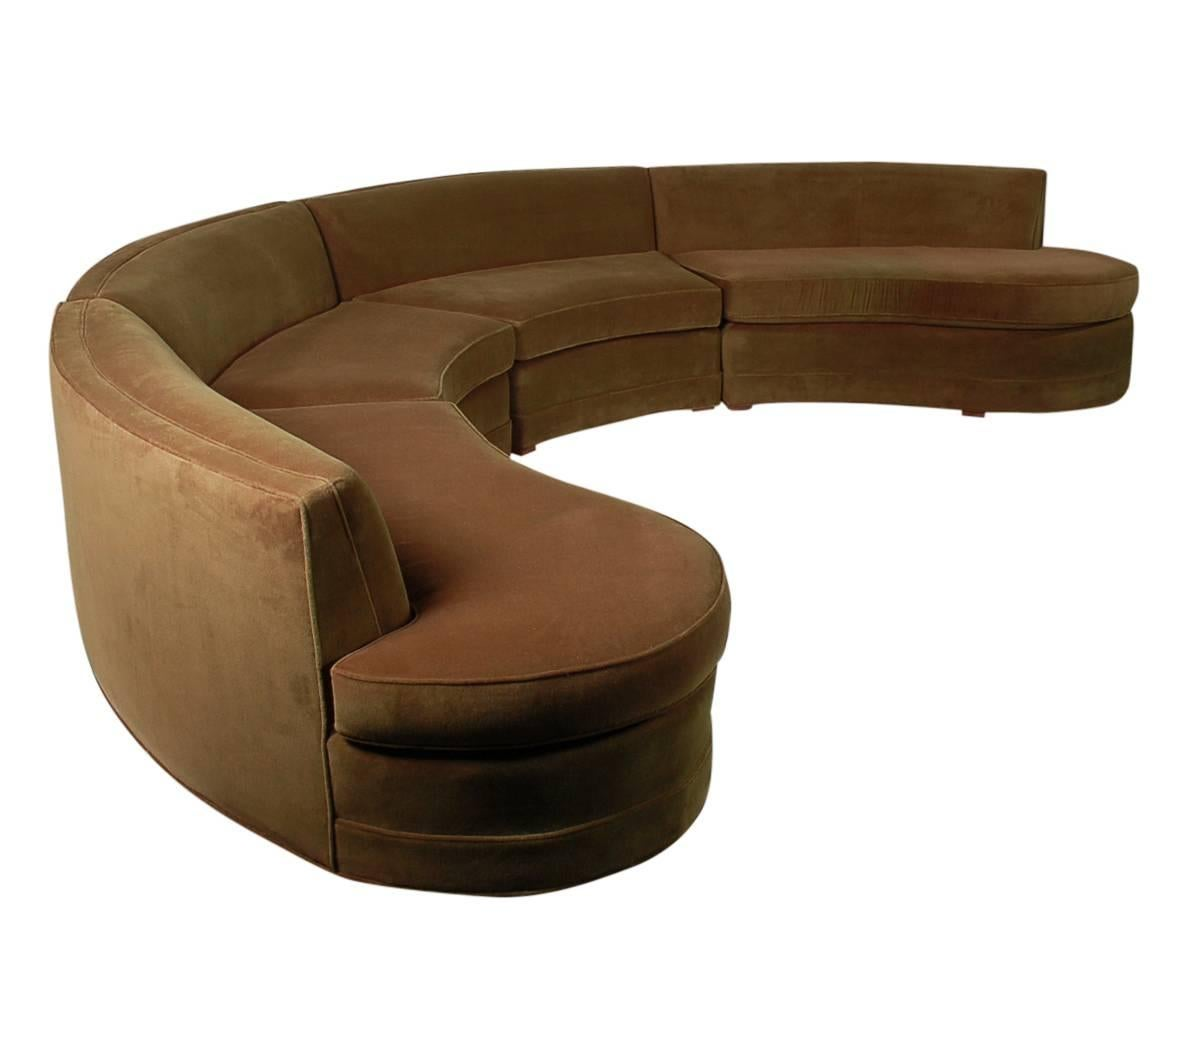 Mid Century Modern Curved Circular Pit Sectional Sofa After Milo Baughman